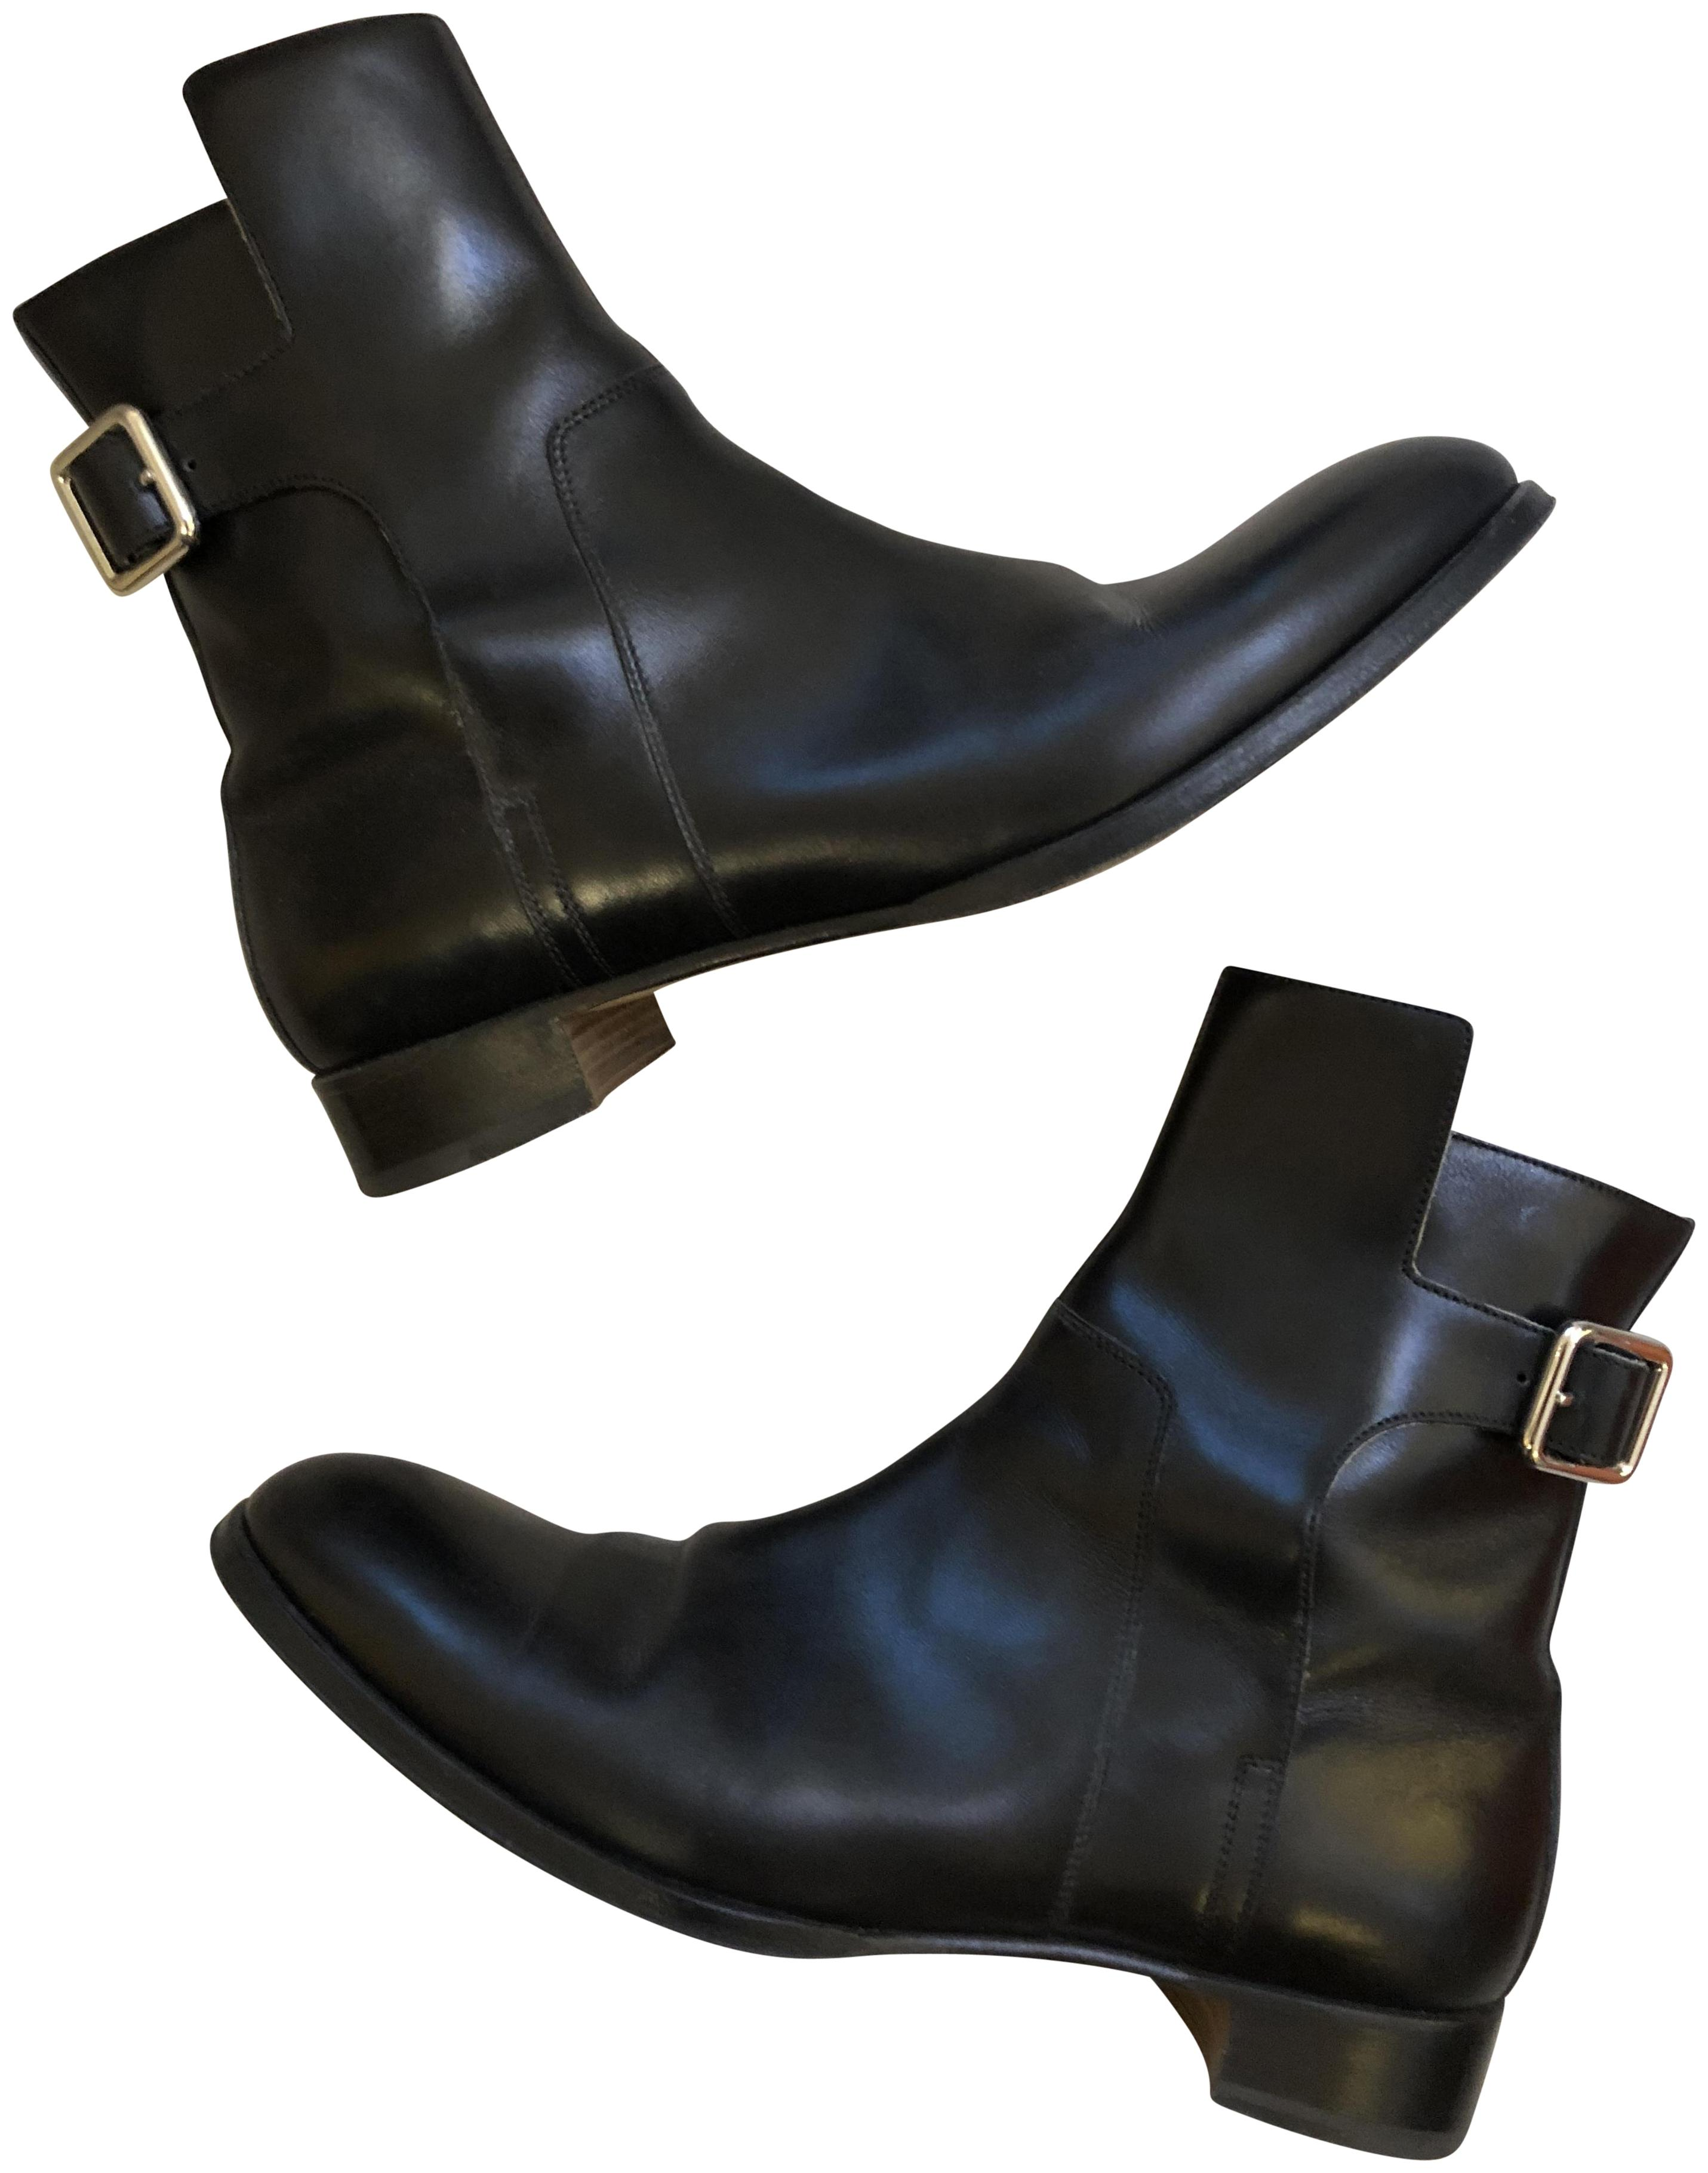 Hermès Black Leather Ankle with Buckle Boots/Booties Size US 9 Regular (M, B)